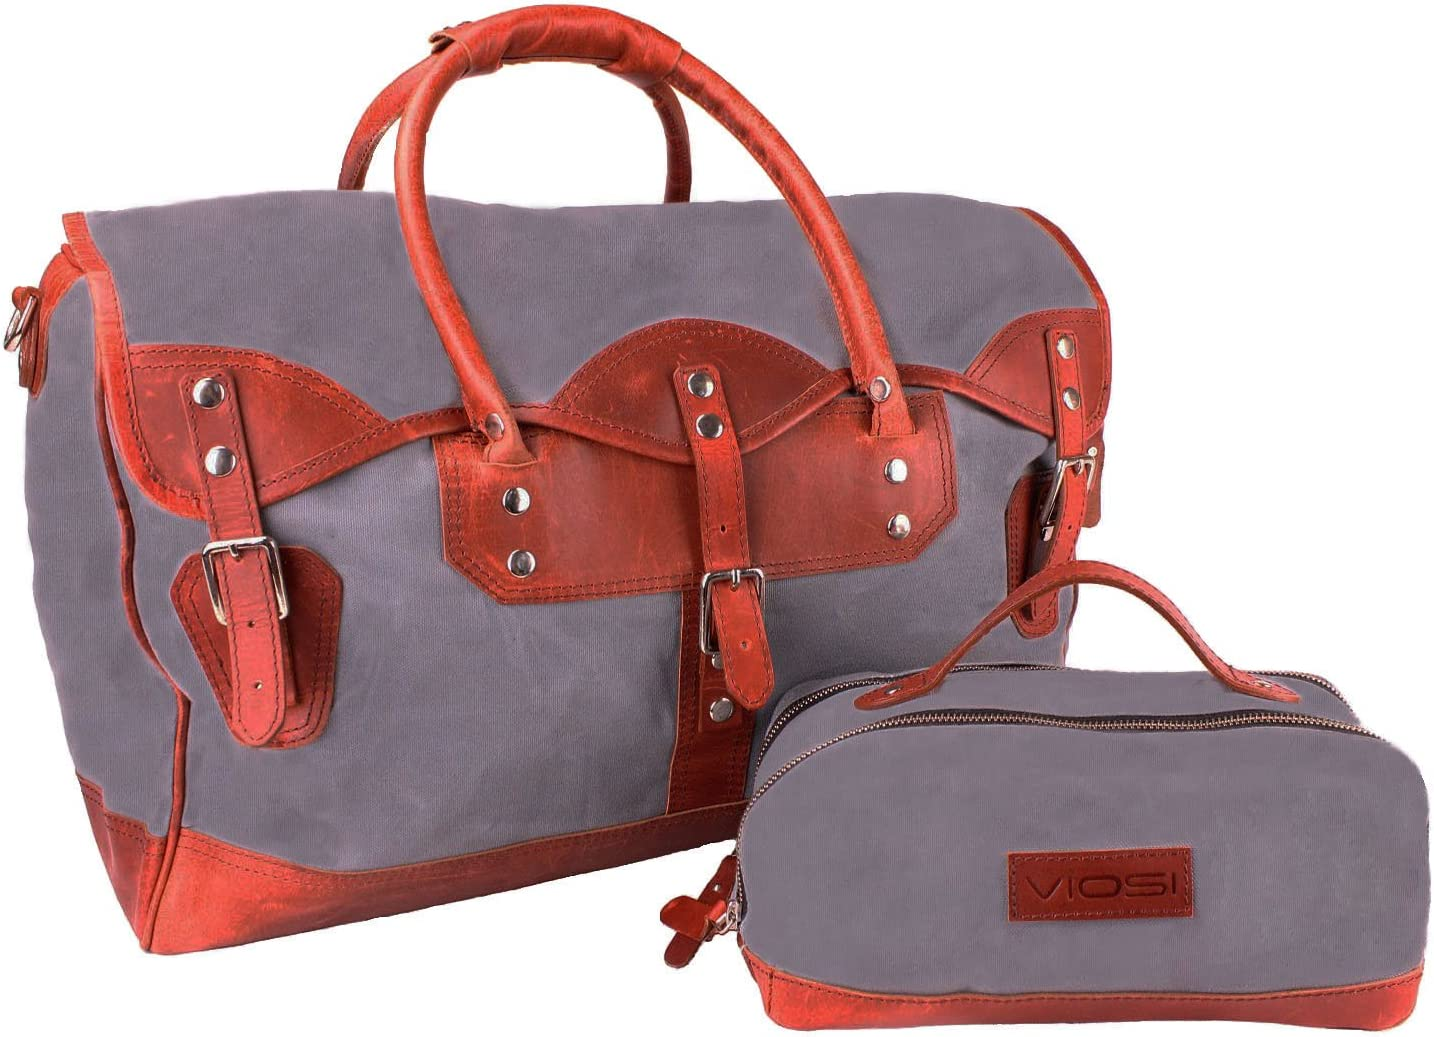 Leather Duffel Bag Waxed Canvas Weekender Travel Bag with Matching Toiletry Bag